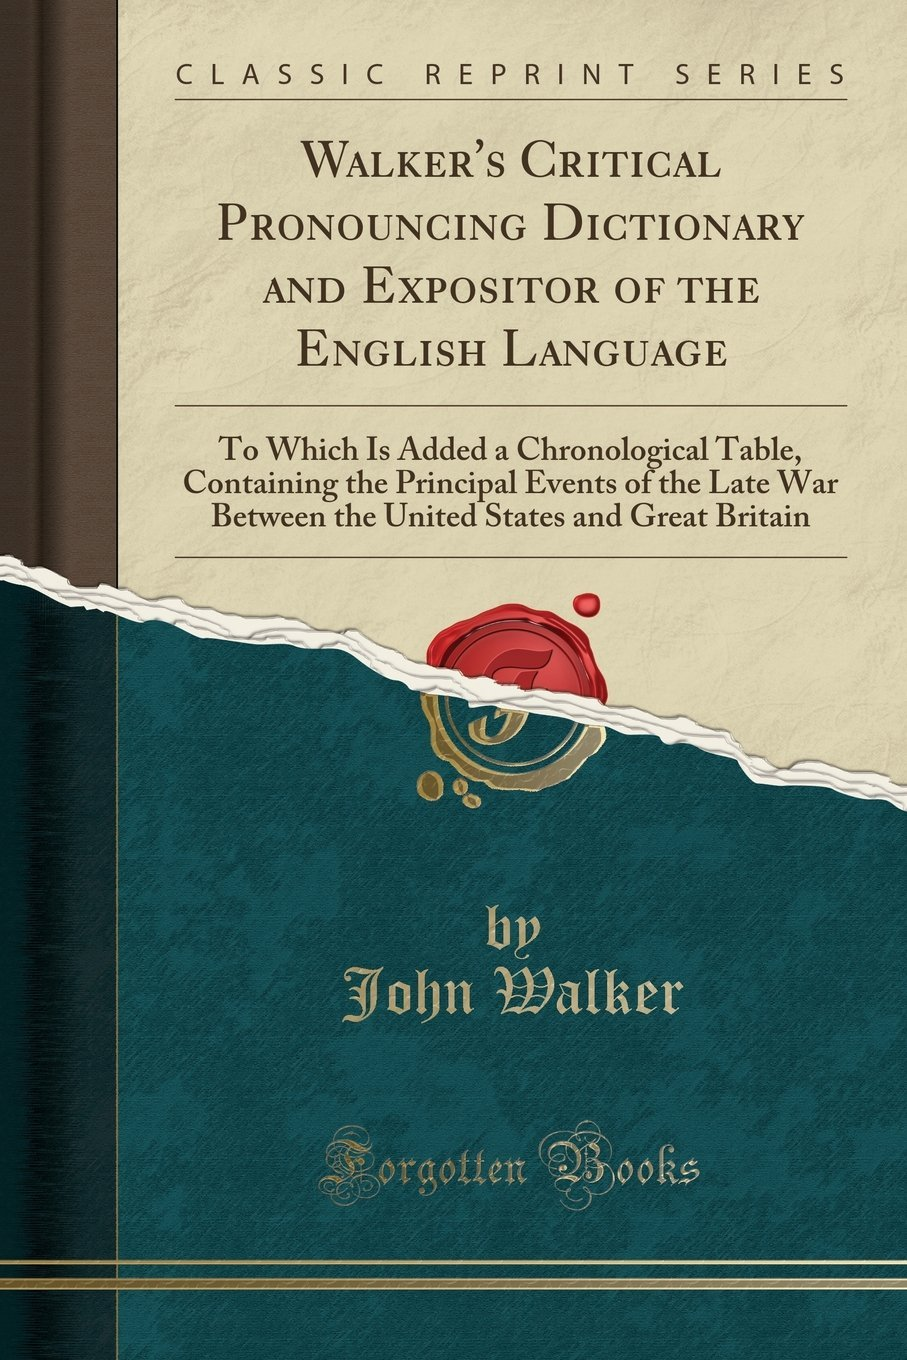 Walker's Critical Pronouncing Dictionary and Expositor of the English Language: To Which Is Added a Chronological Table, Containing the Principal ... States and Great Britain (Classic Reprint) by Forgotten Books